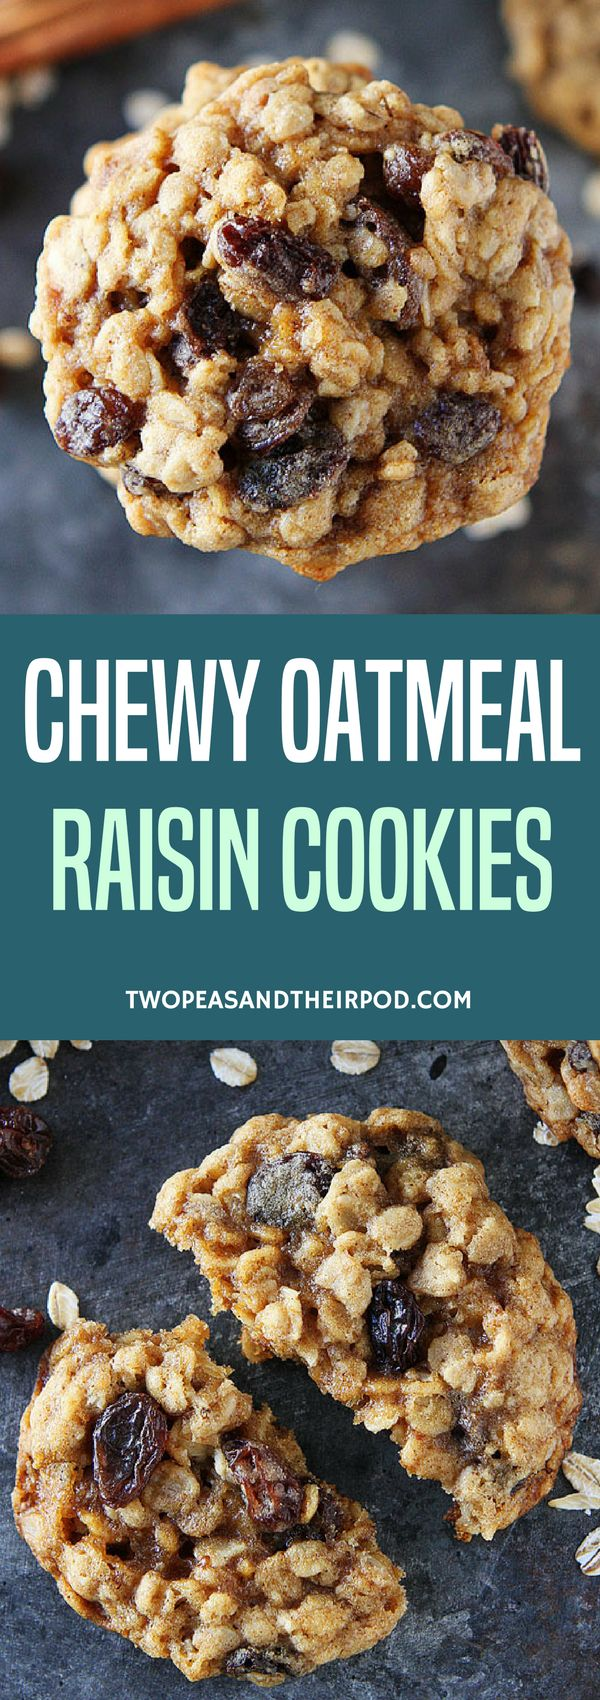 These Soft And Chewy Oatmeal Raisin Cookies Are A Family-Favorite! This Classic Cookie Recipe Is Easy To Make And Goes Great With A Glass Of Milk. Seriously One Of The Best Oatmeal Raisin Cookie Recipes You'll Ever Make. #cookies #oatmeal #oatmealraisin #baking